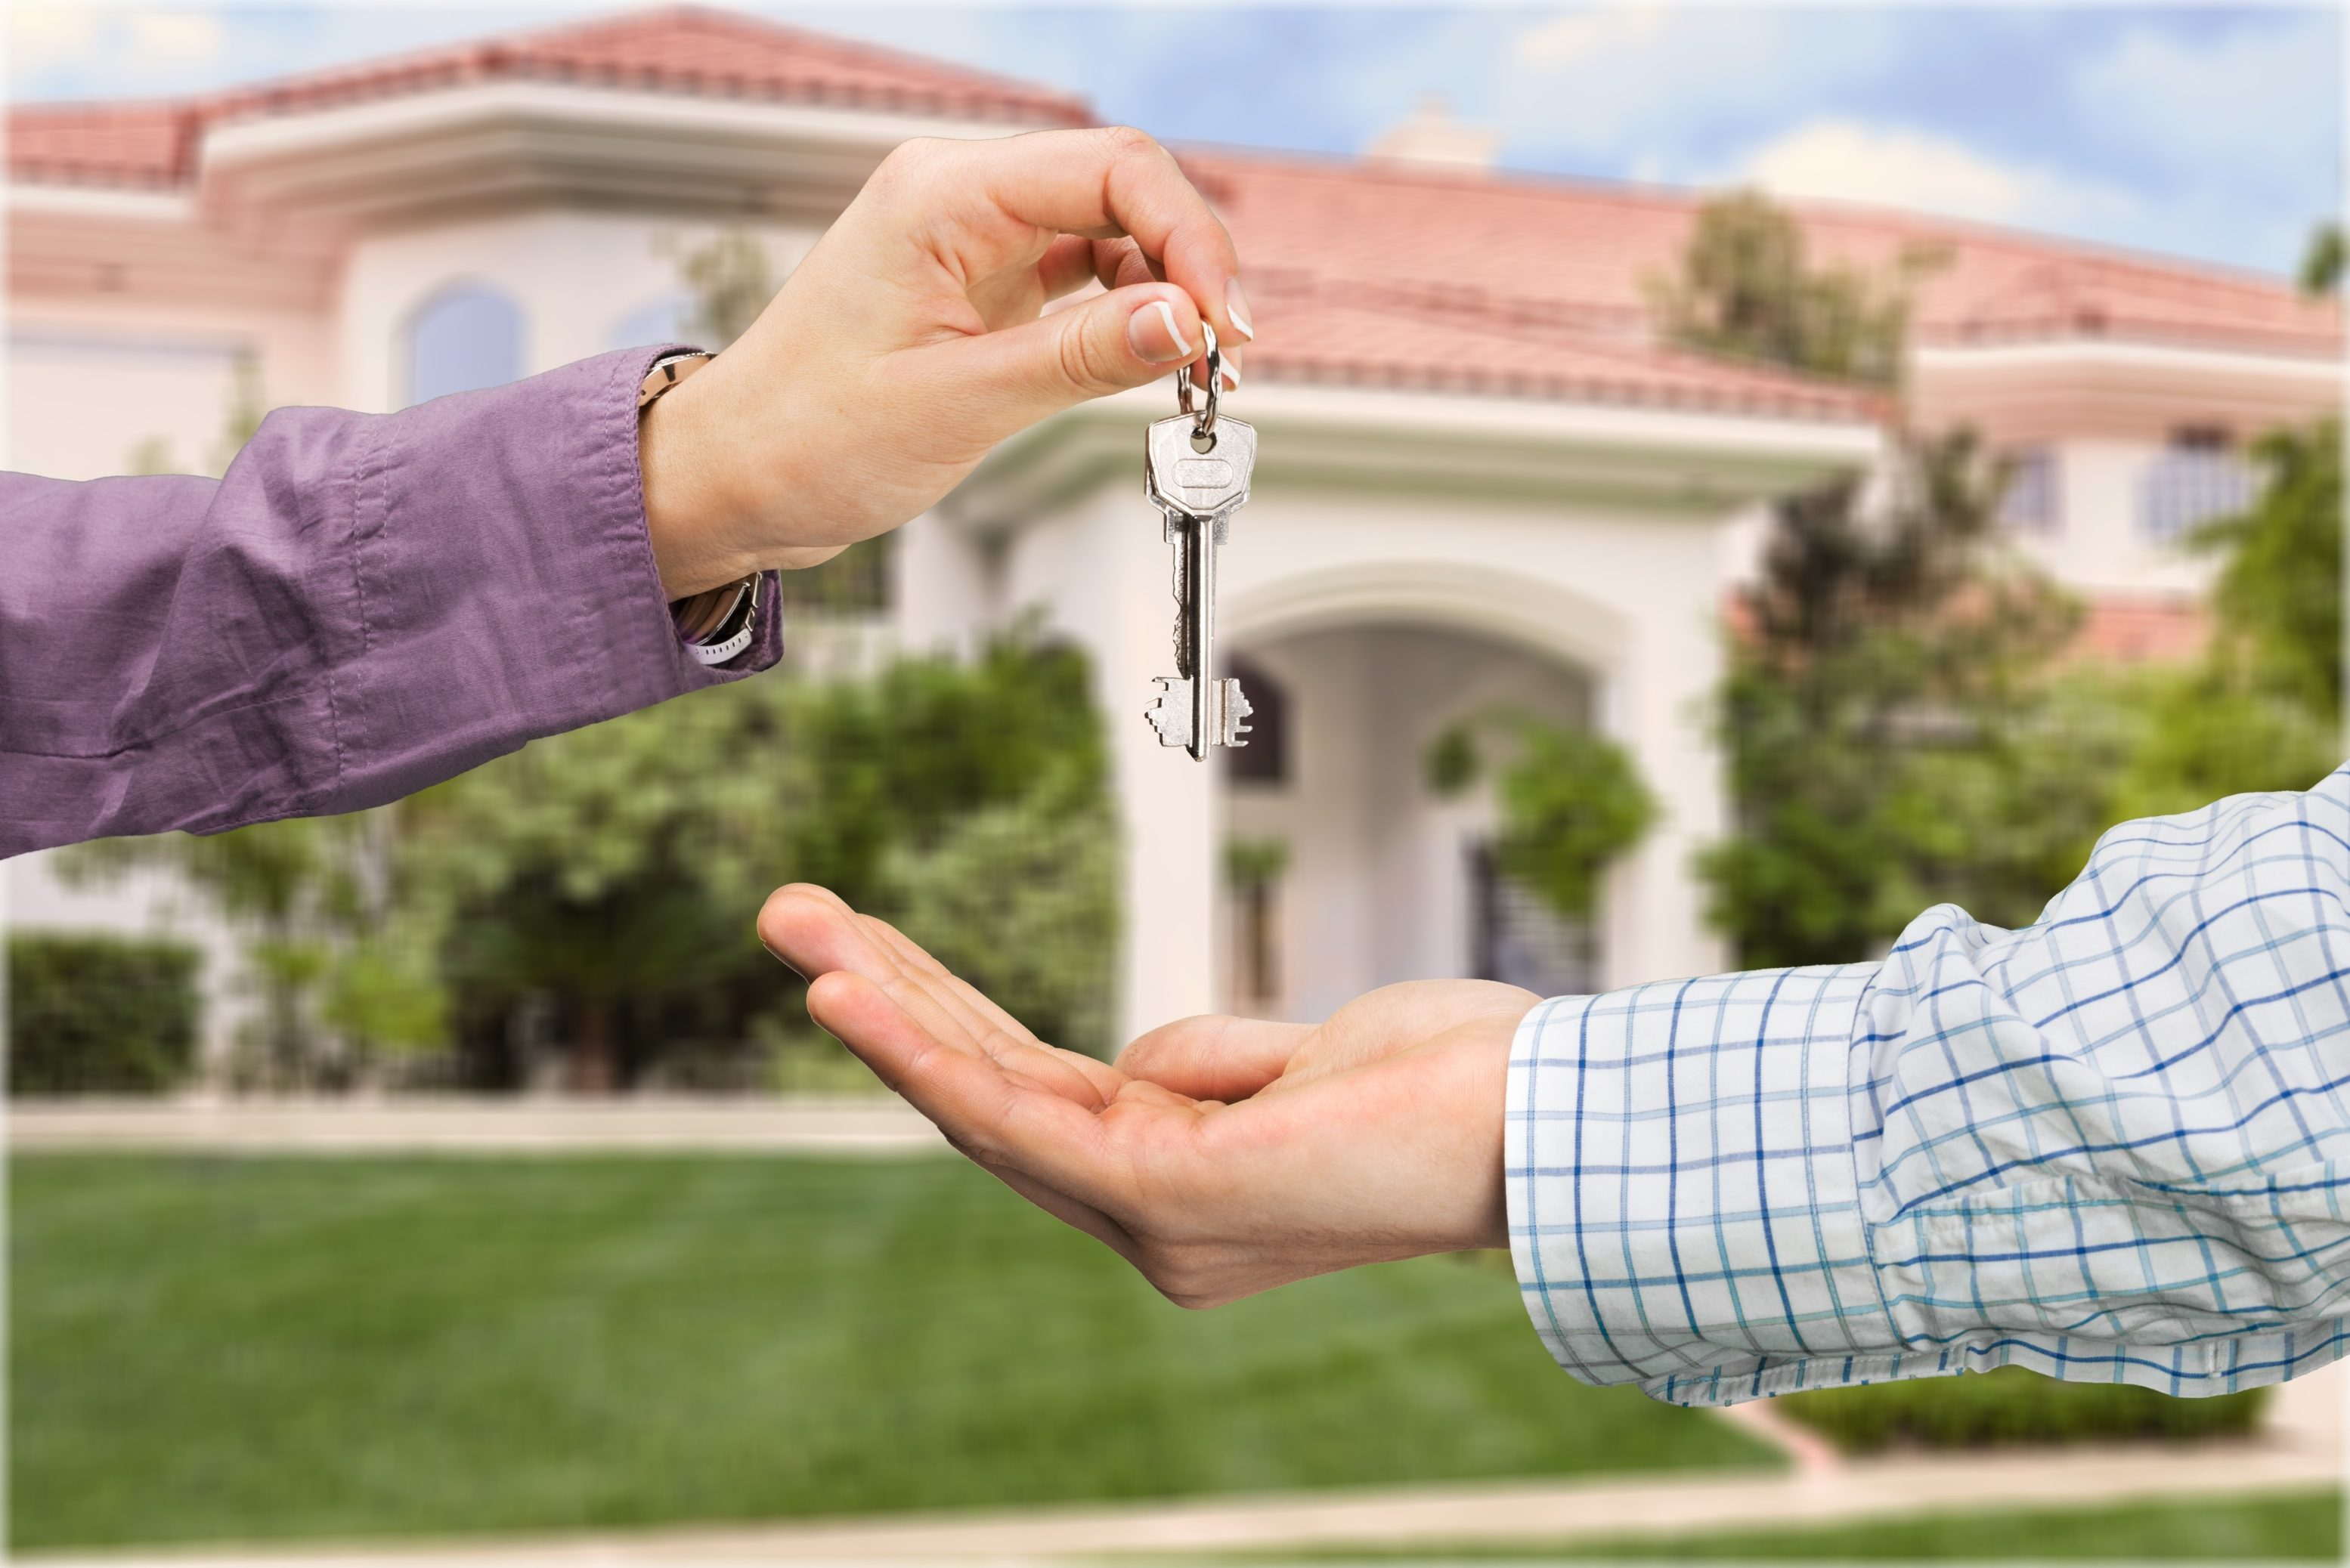 We Buy Houses Pittsburgh PA: How You Can Get Your Home Sold